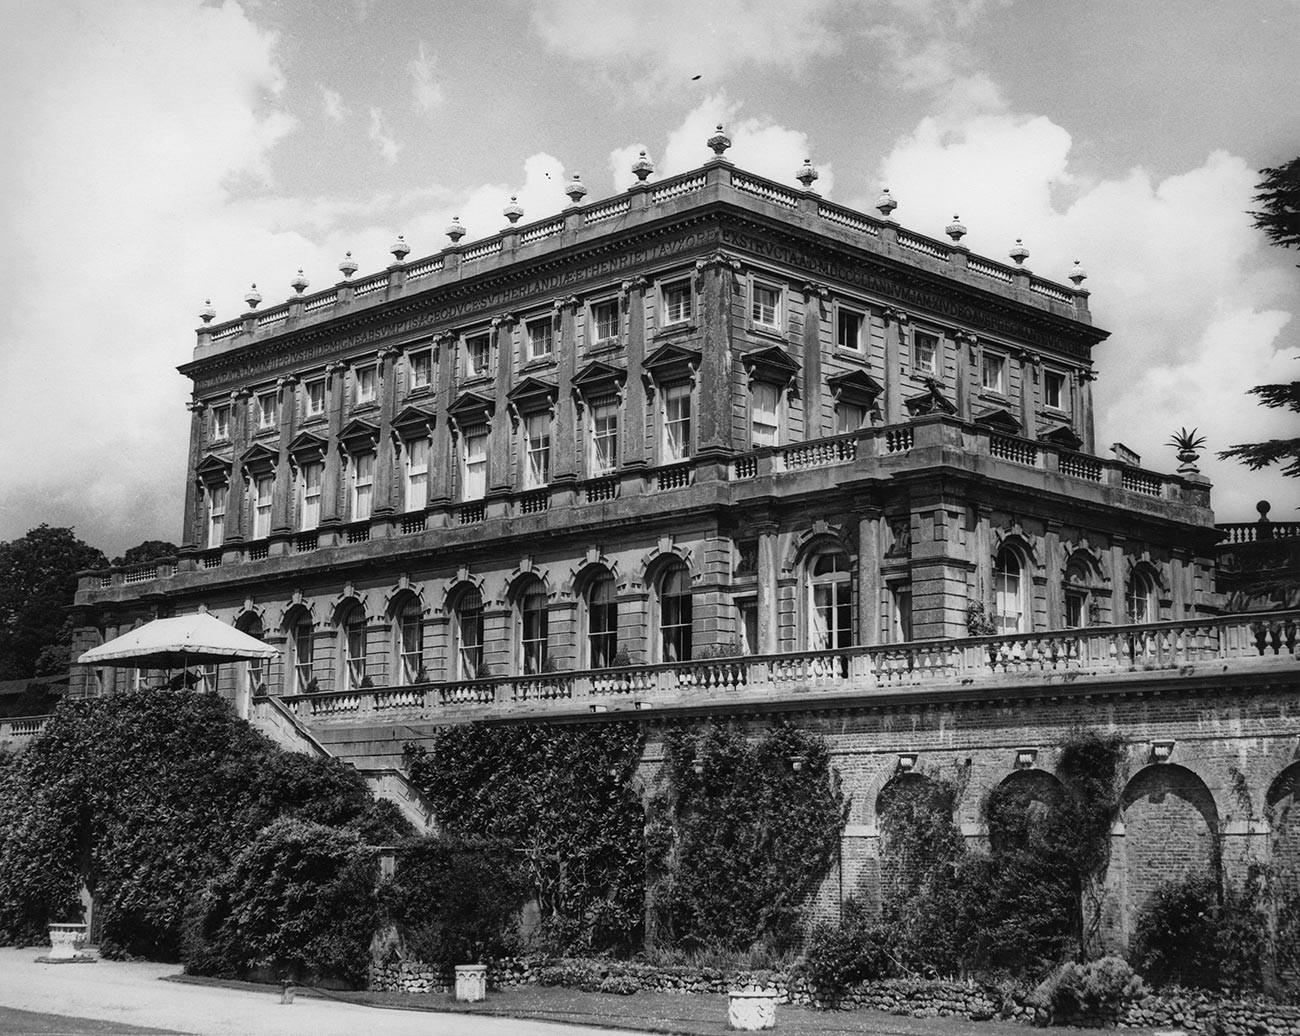 Cliveden, Lord Astor's mansion in Buckinghamshire, 28th June 1963.